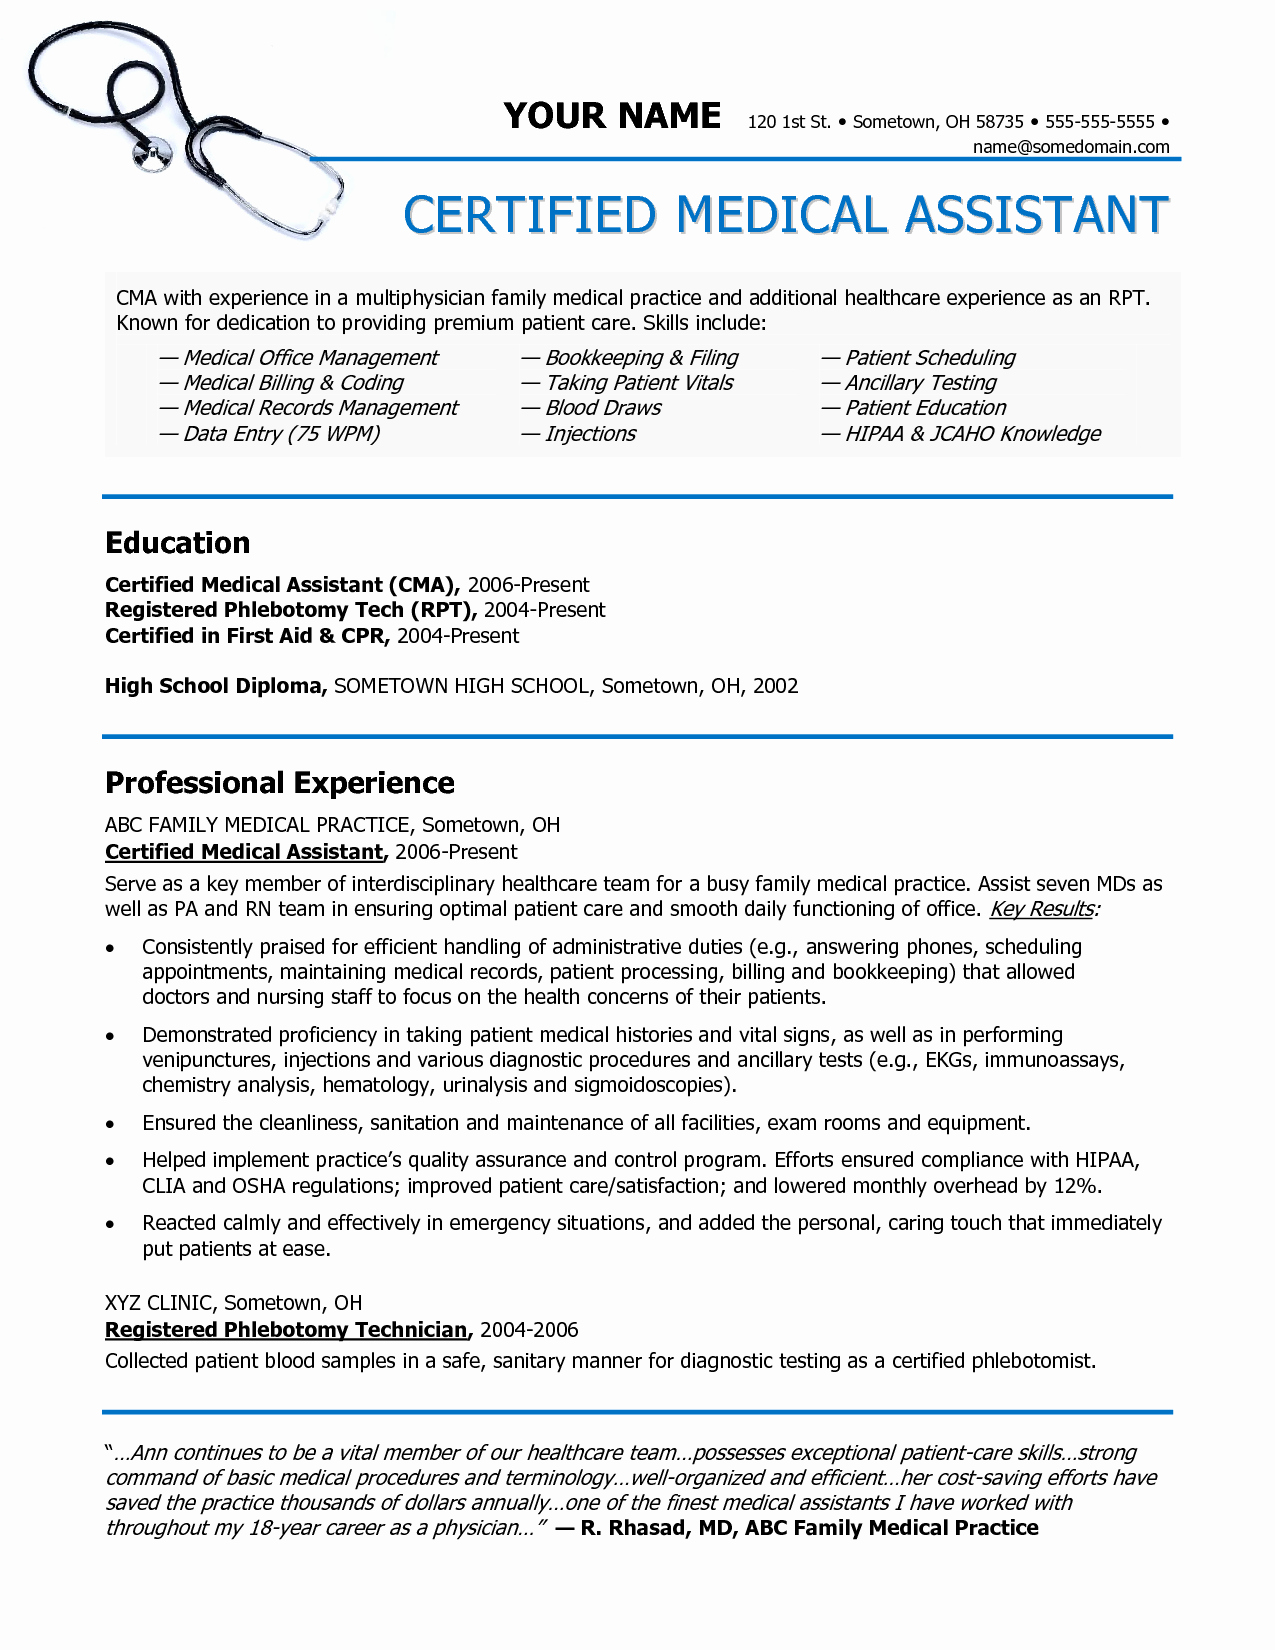 Medical assistant Resume Template Fresh Medical assistant Resume Entry Level Examples 18 Medical